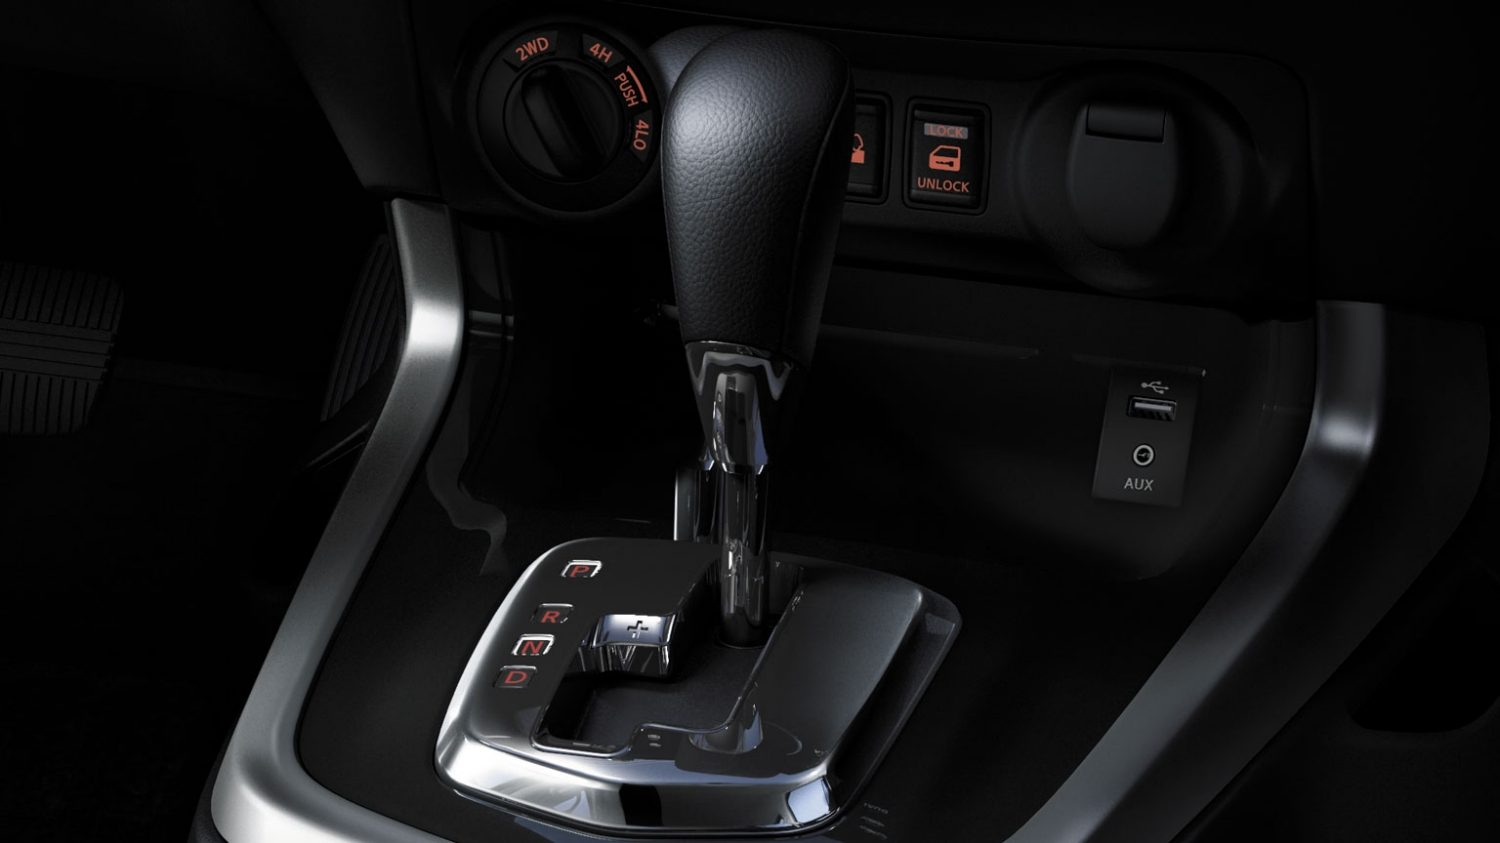 Nissan NP300 Navara - 7-speed automatic transmission shifter